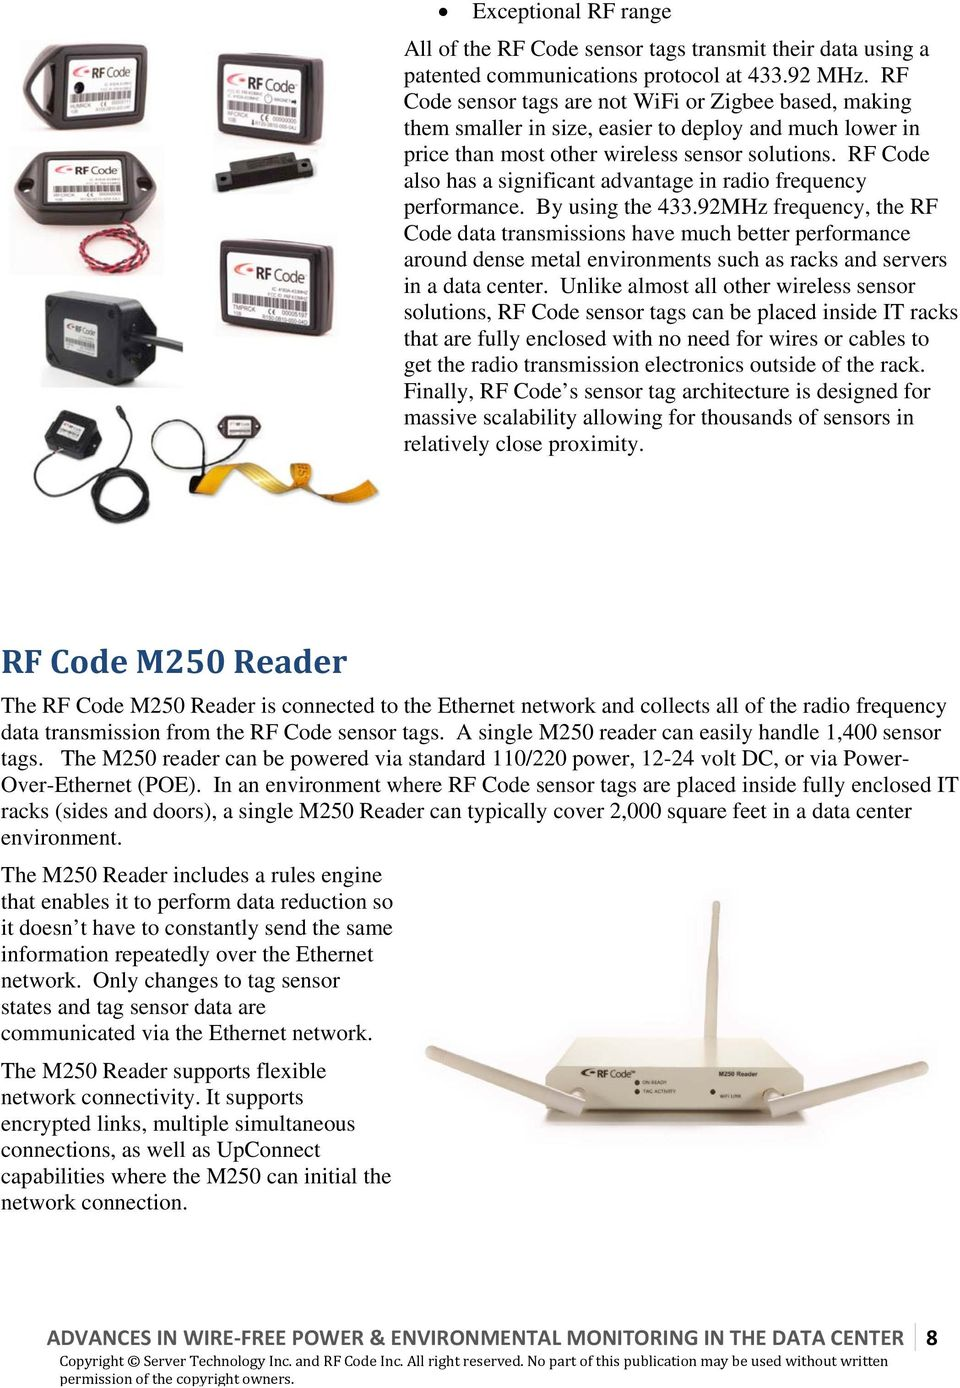 RF Code also has a significant advantage in radio frequency performance. By using the 433.